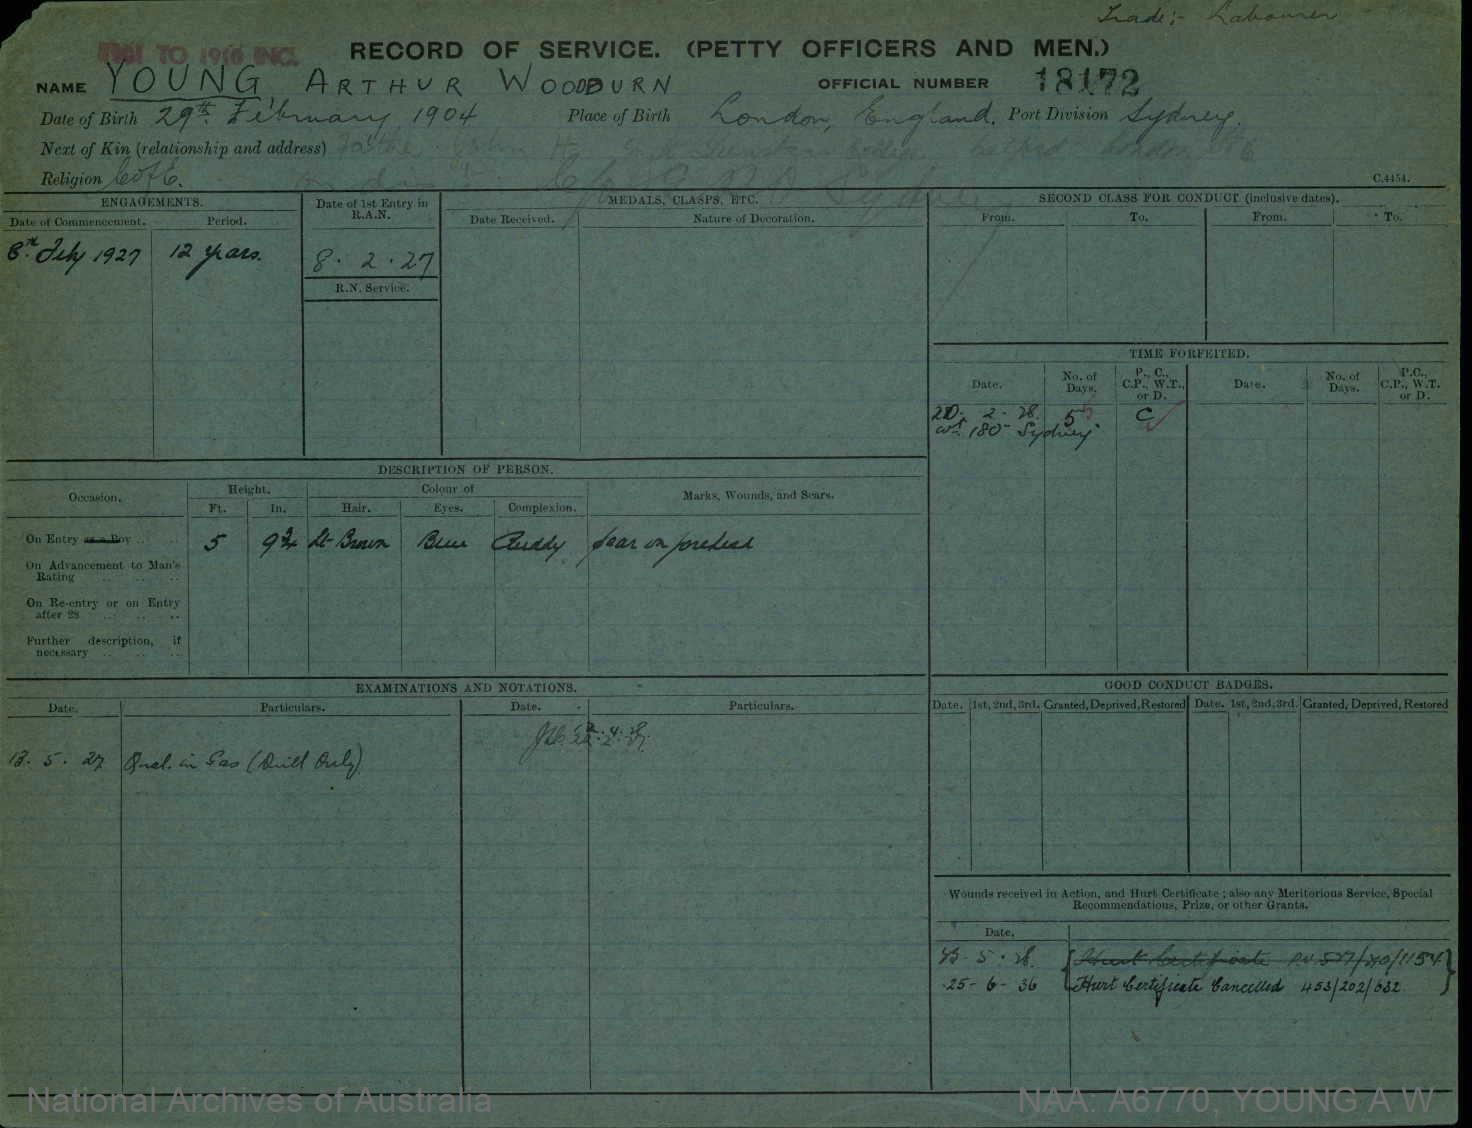 YOUNG ARTHUR WOODBURN : Service Number - 18172 : Date of birth - 29 Feb 1904 : Place of birth - LONDON ENGLAND : Place of enlistment - SYDNEY : Next of Kin - JOHN